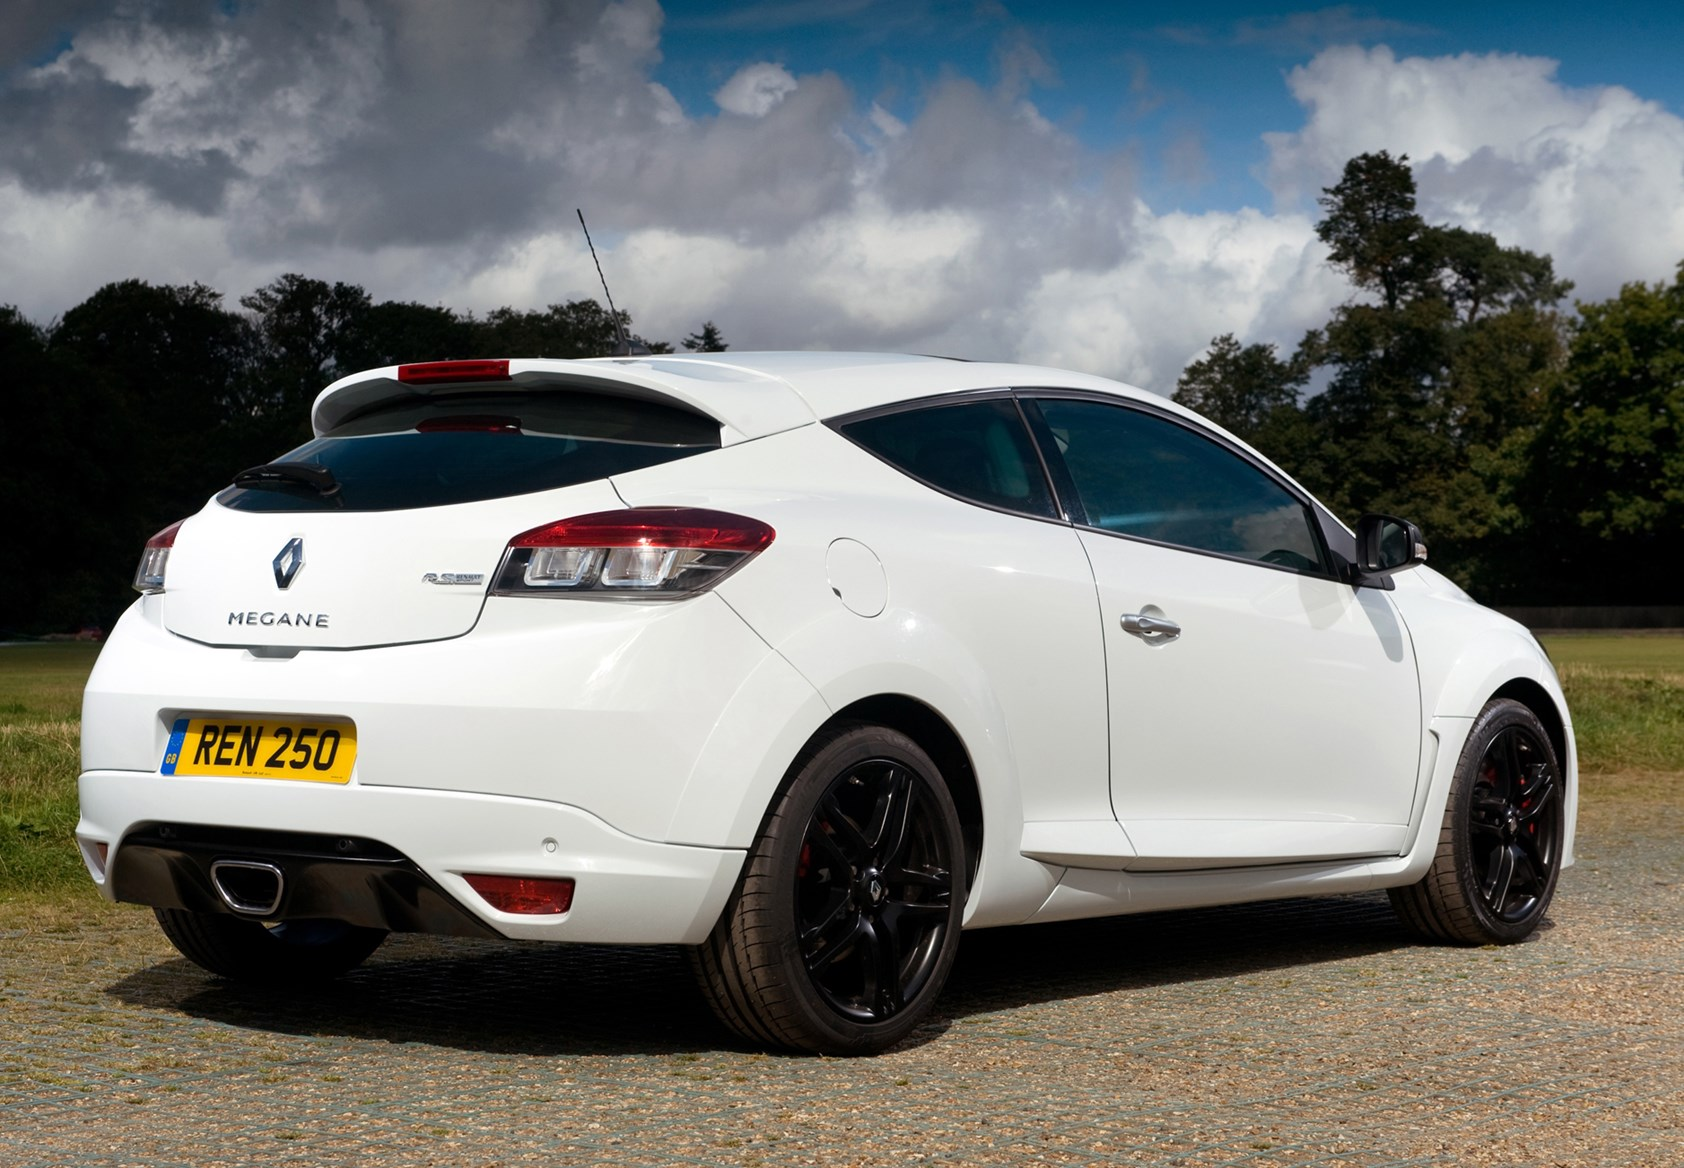 Used Renault Megane Renaultsport 2010 2016 Review Parkers